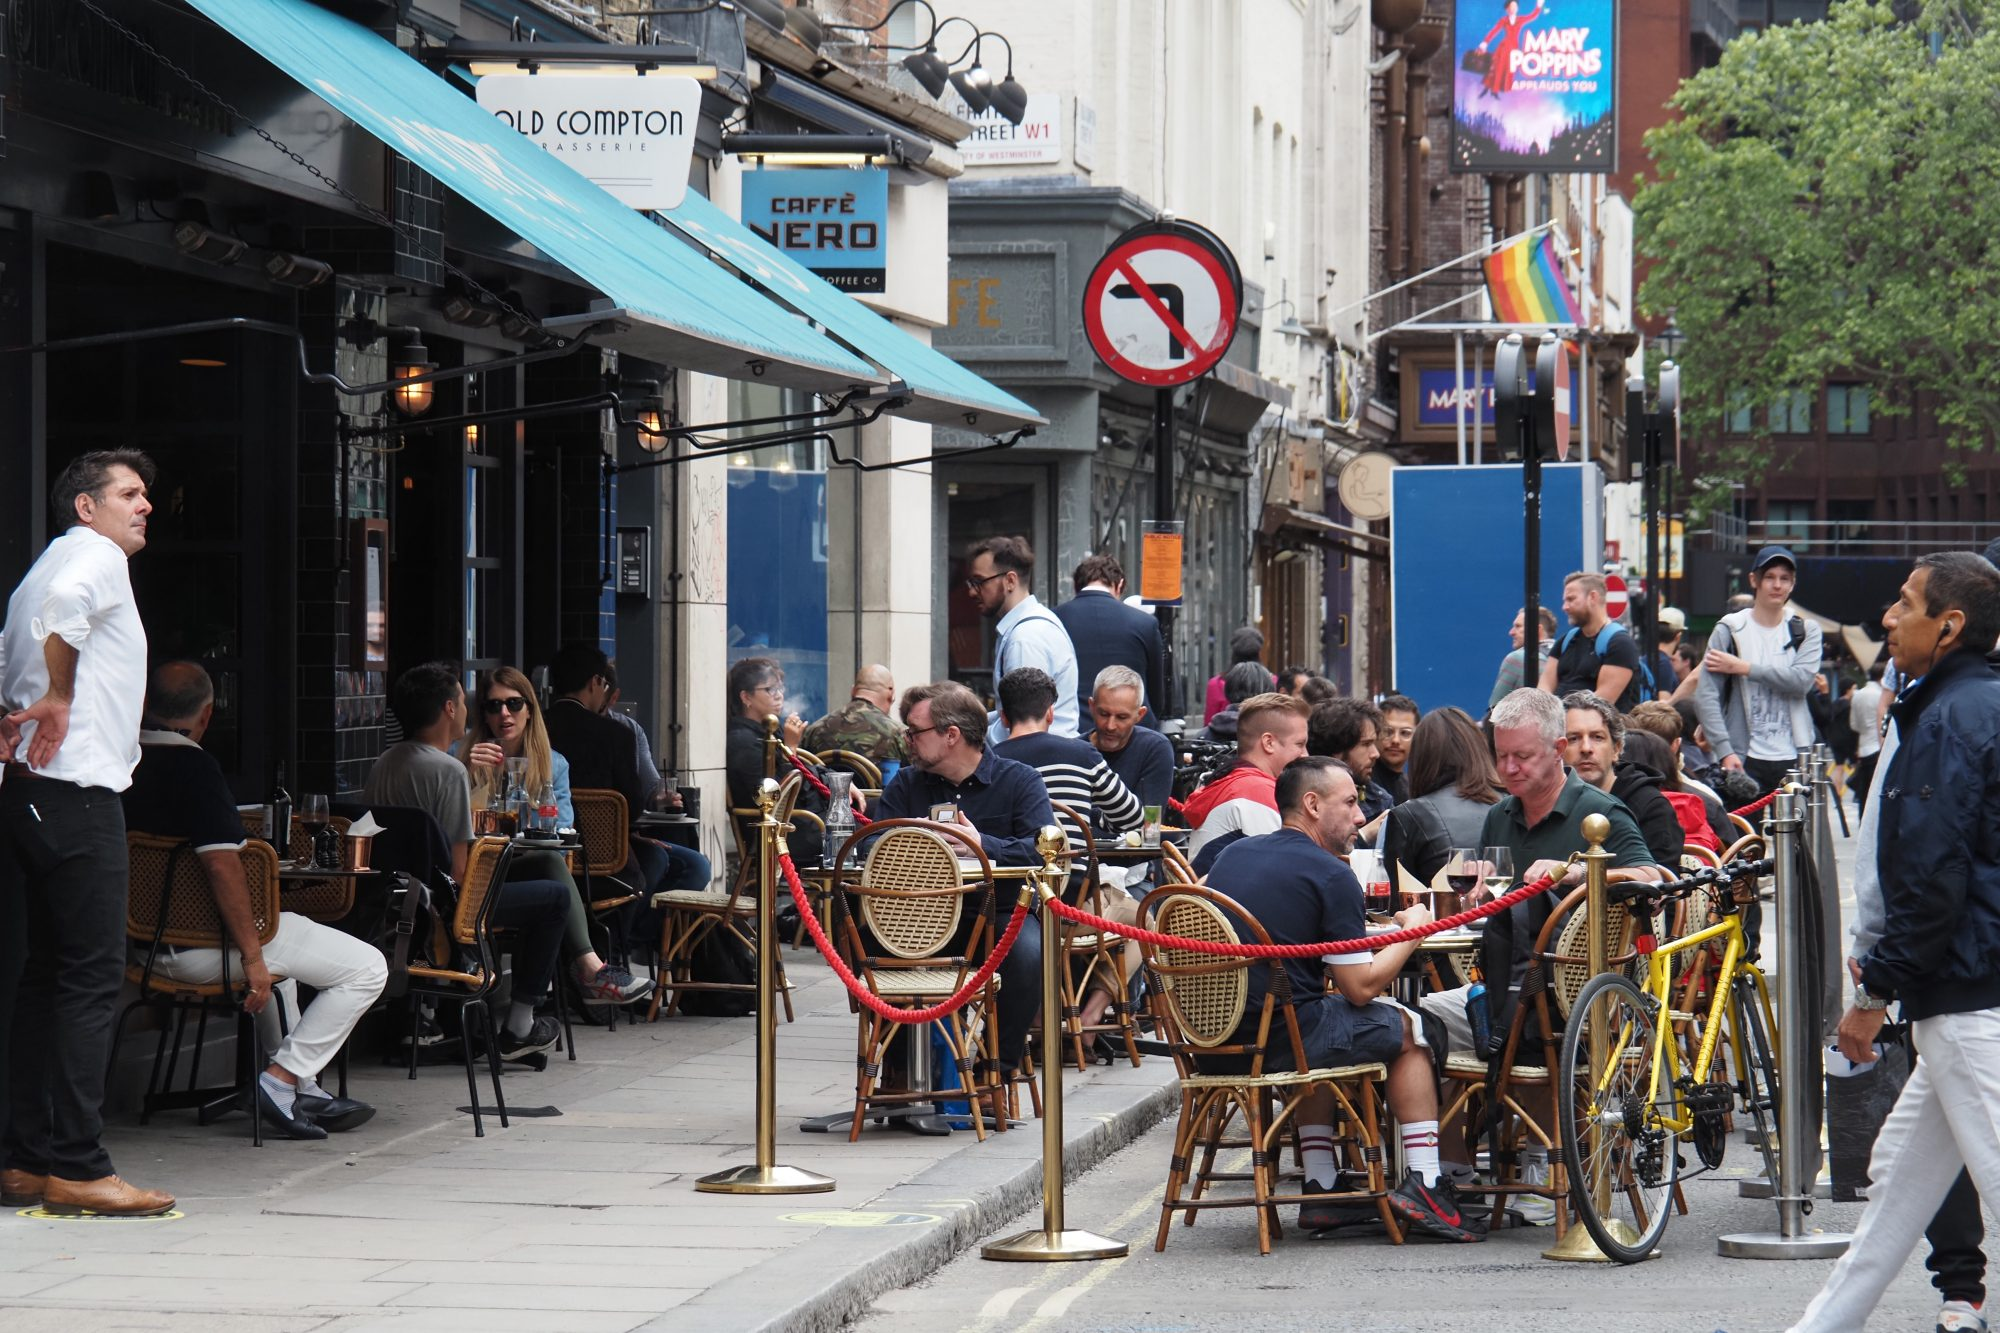 Pubs, restaurants, hair salons reopen as lockdown eases in England